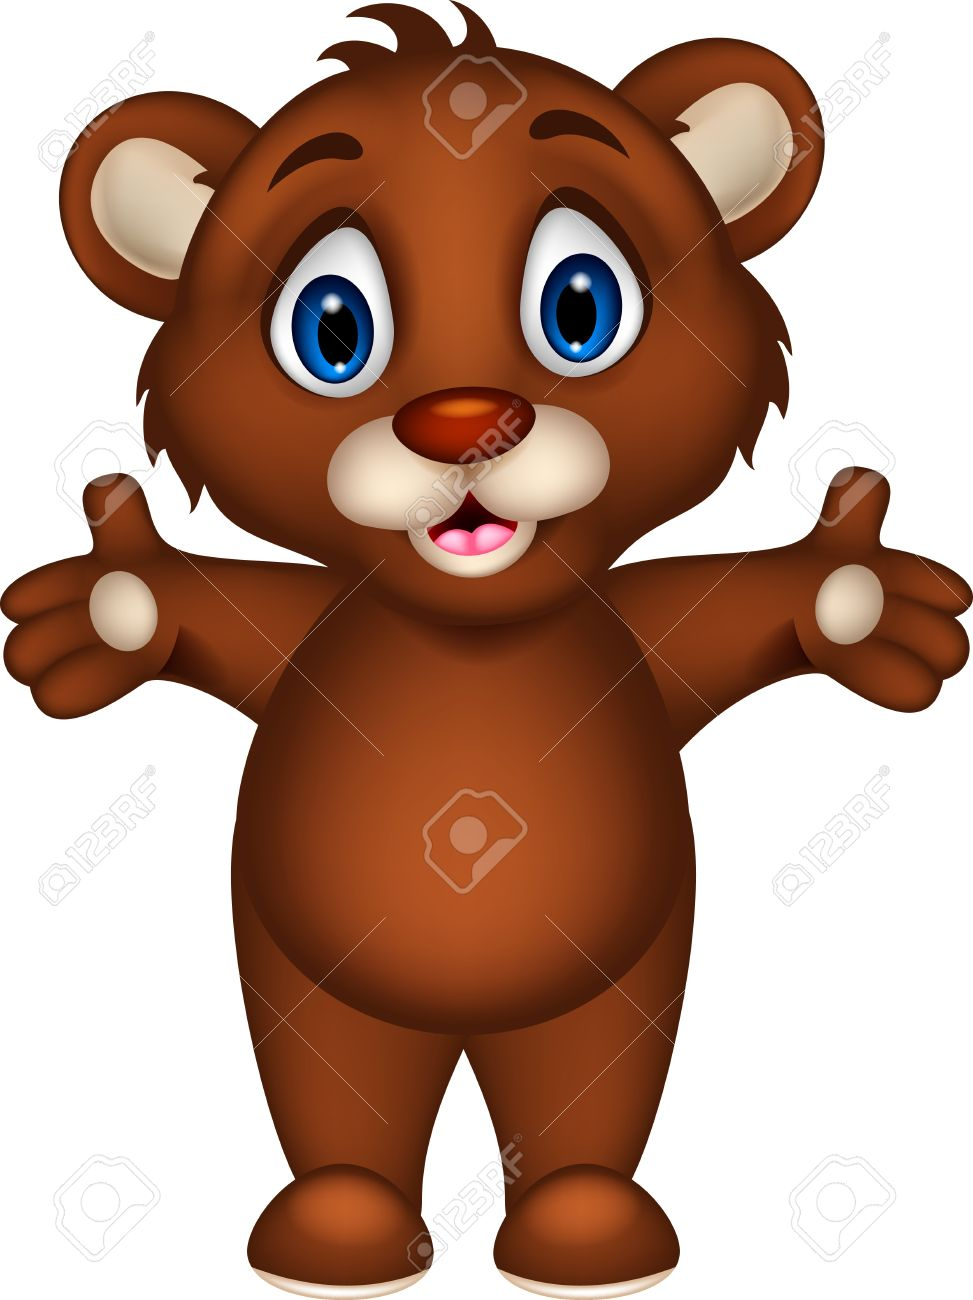 Baby cub clipart 4 » Clipart Station.